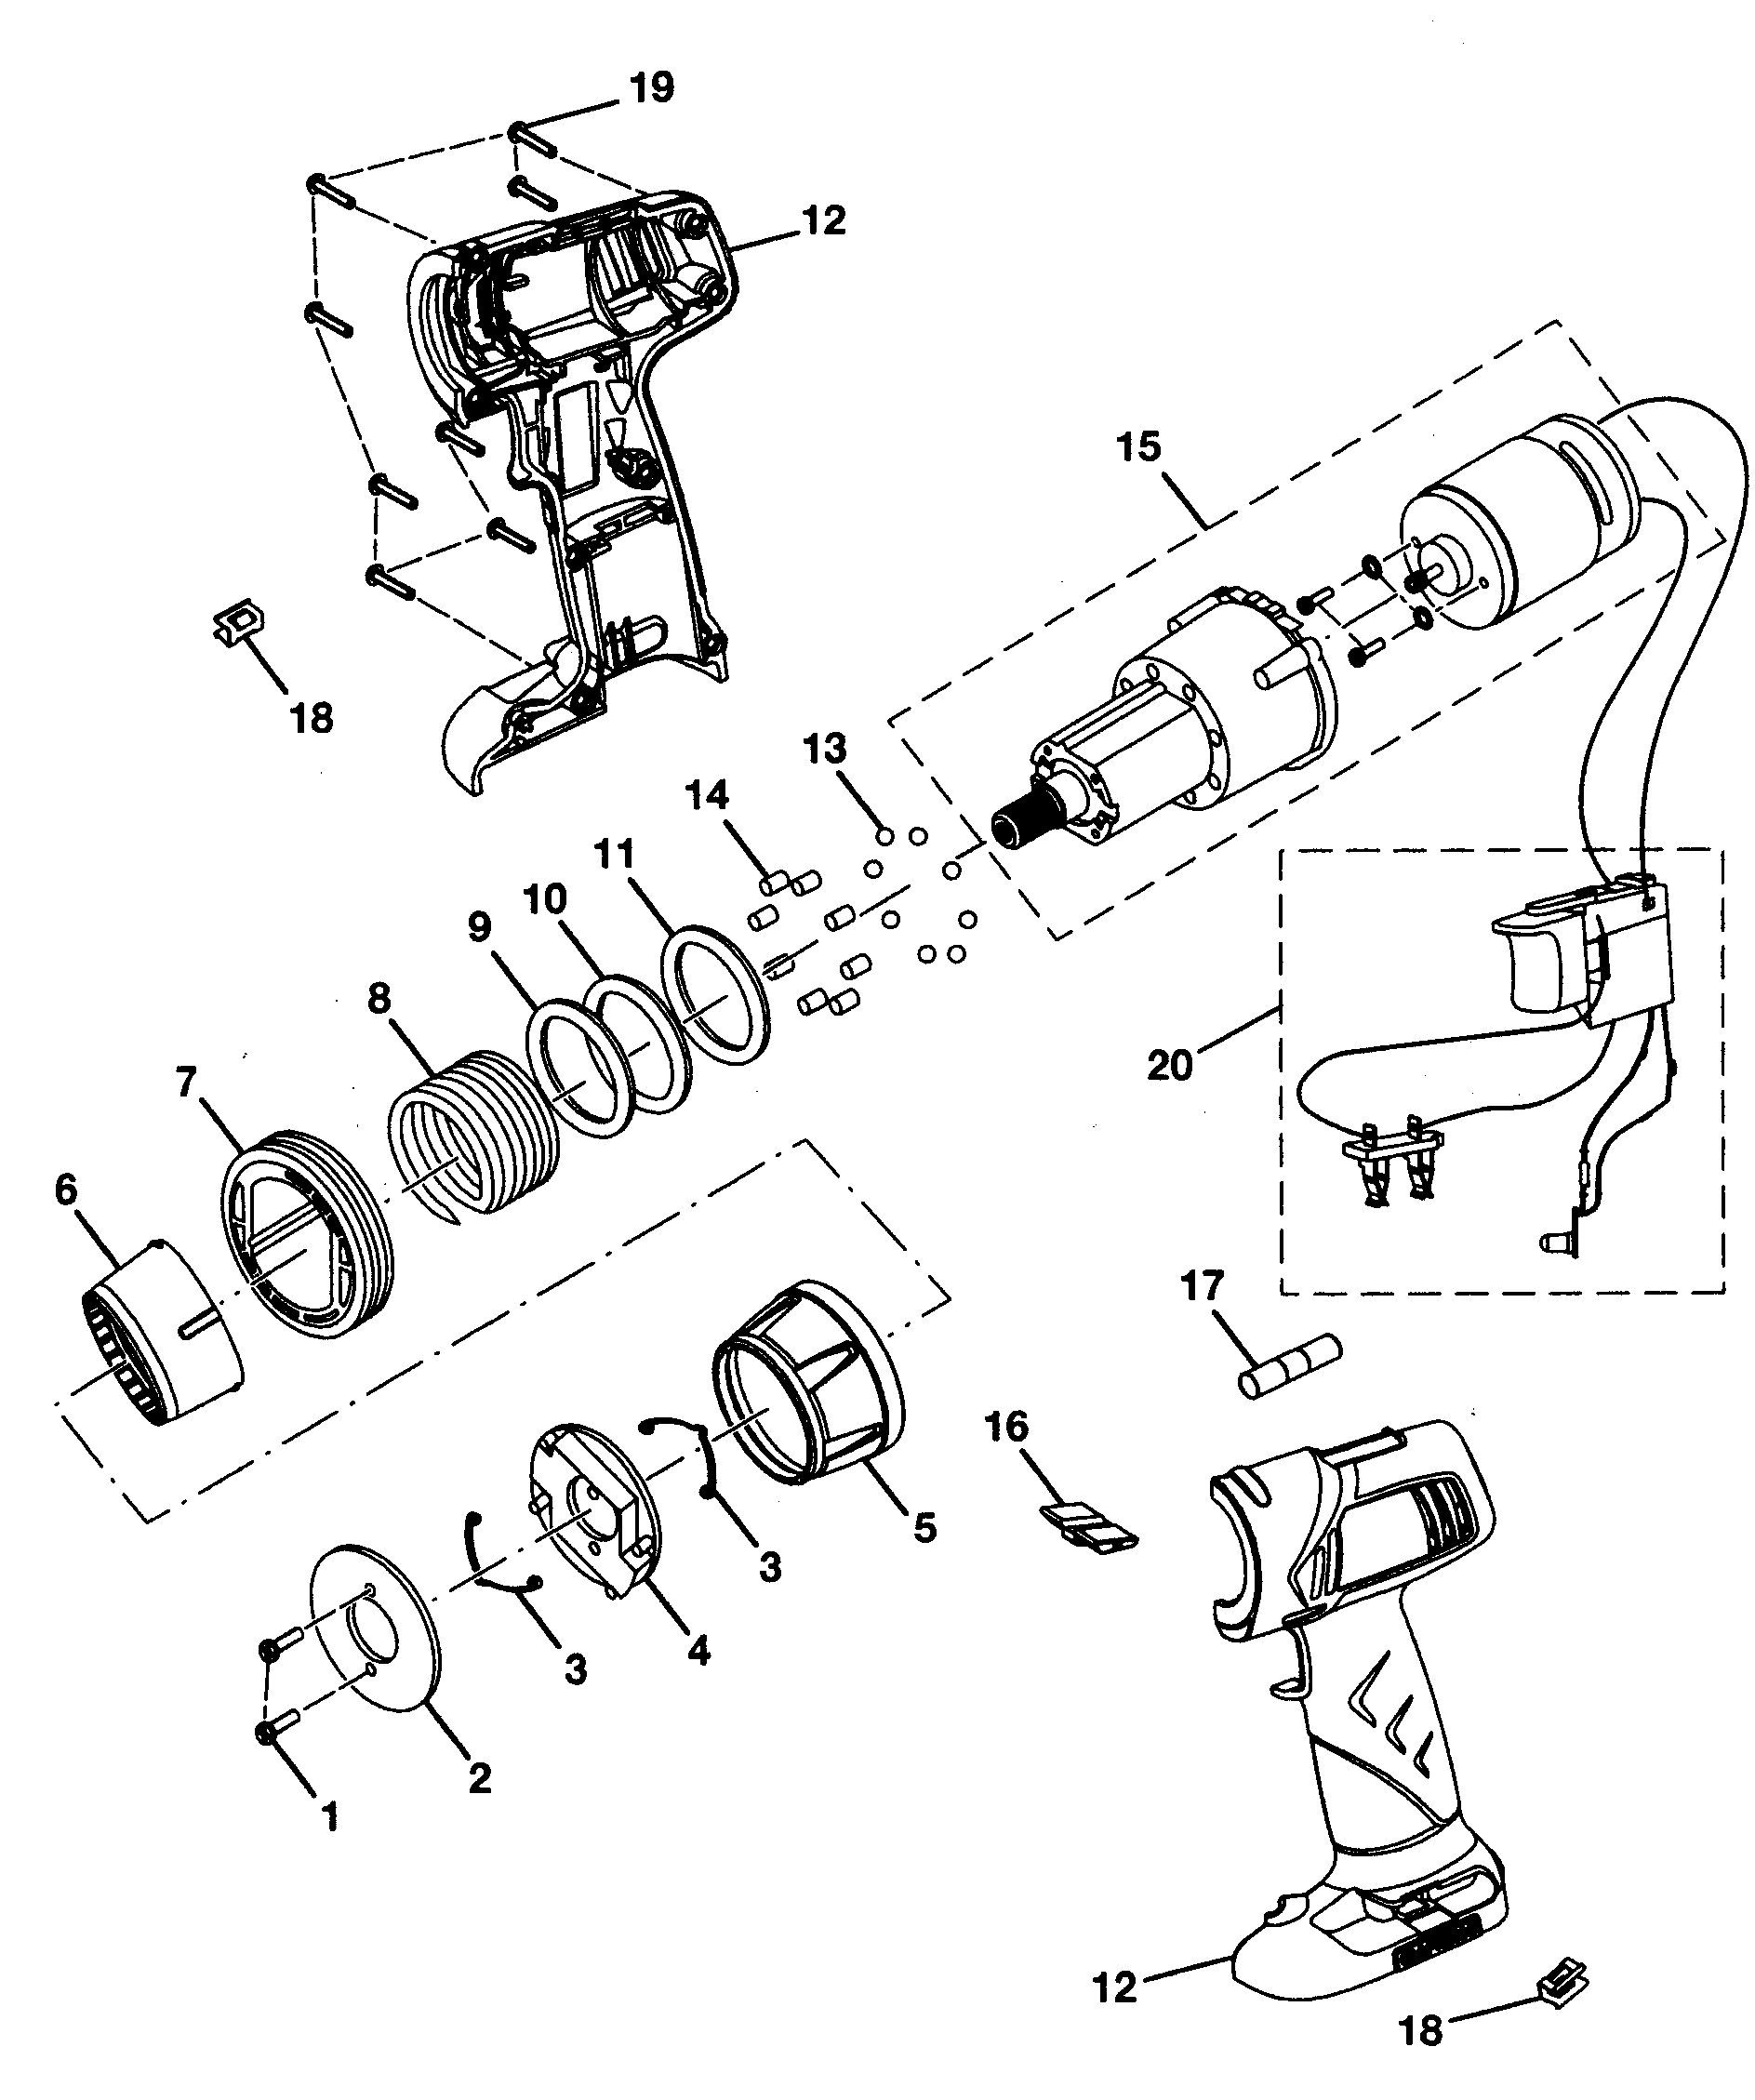 Craftsman 315115340 motor assy diagram